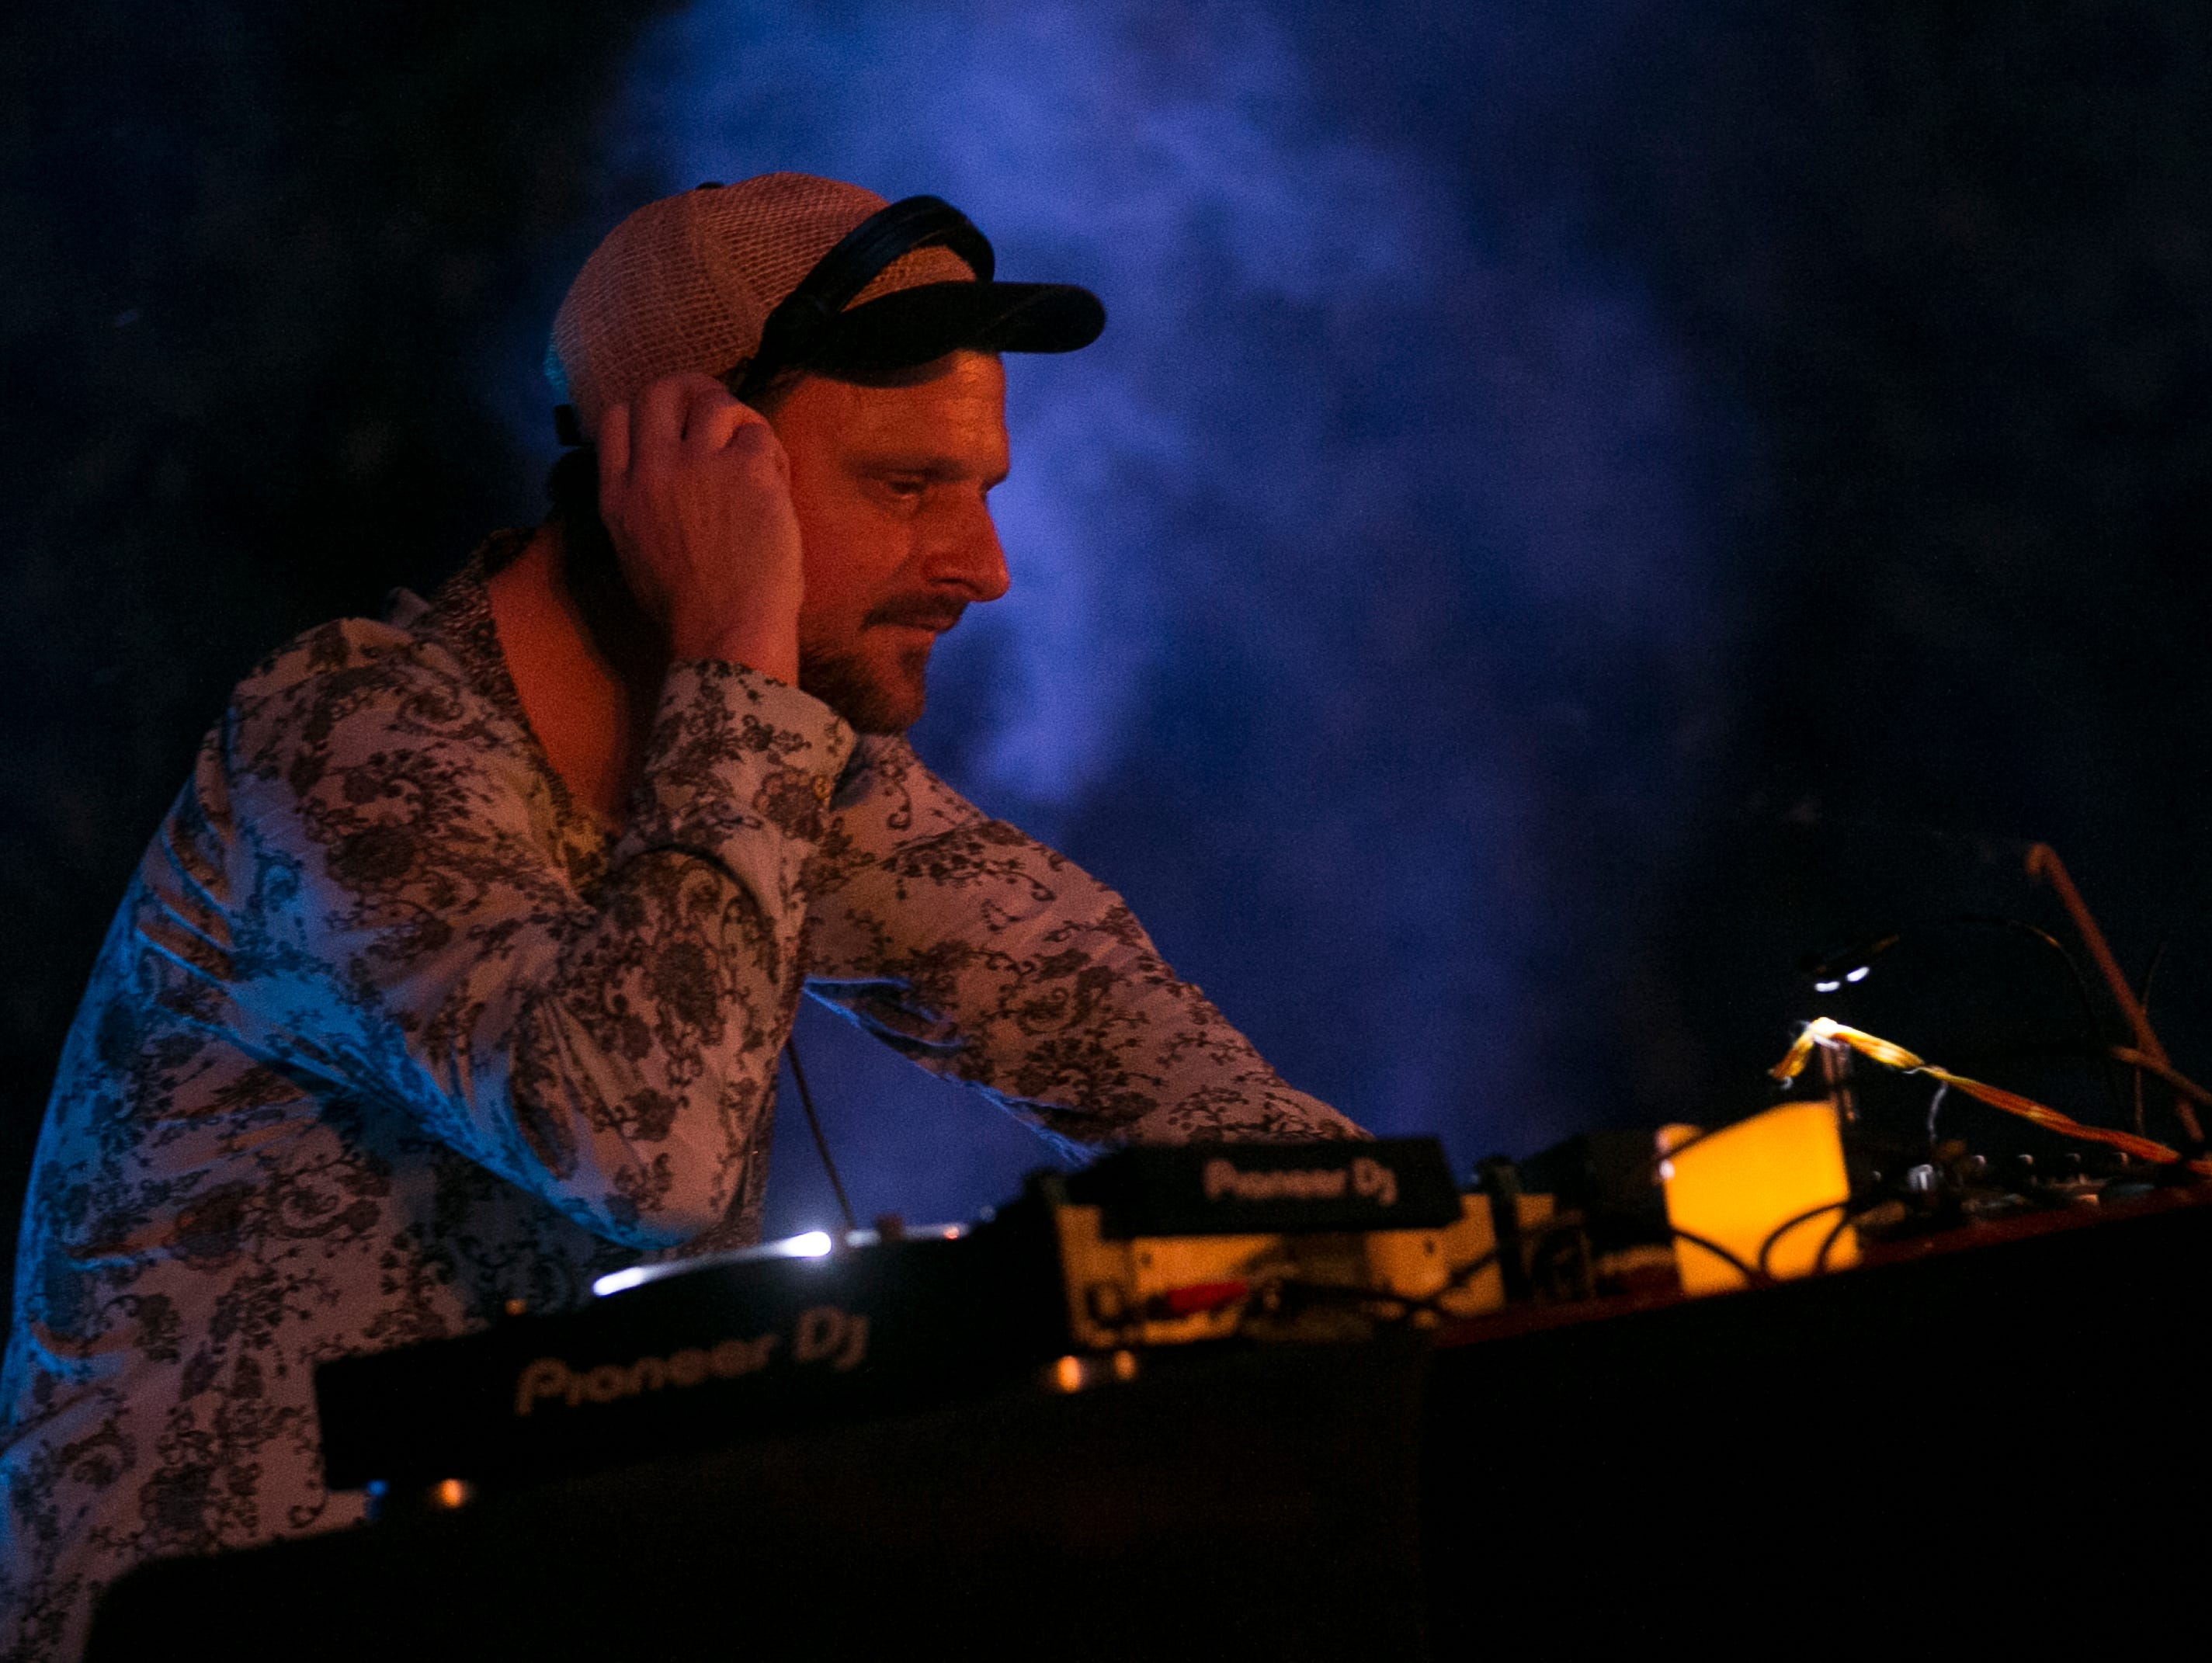 DJ Koze performs at the 2019 FORM Arcosanti music festival near Camp Verde, Arizona, on May 12, 2019.